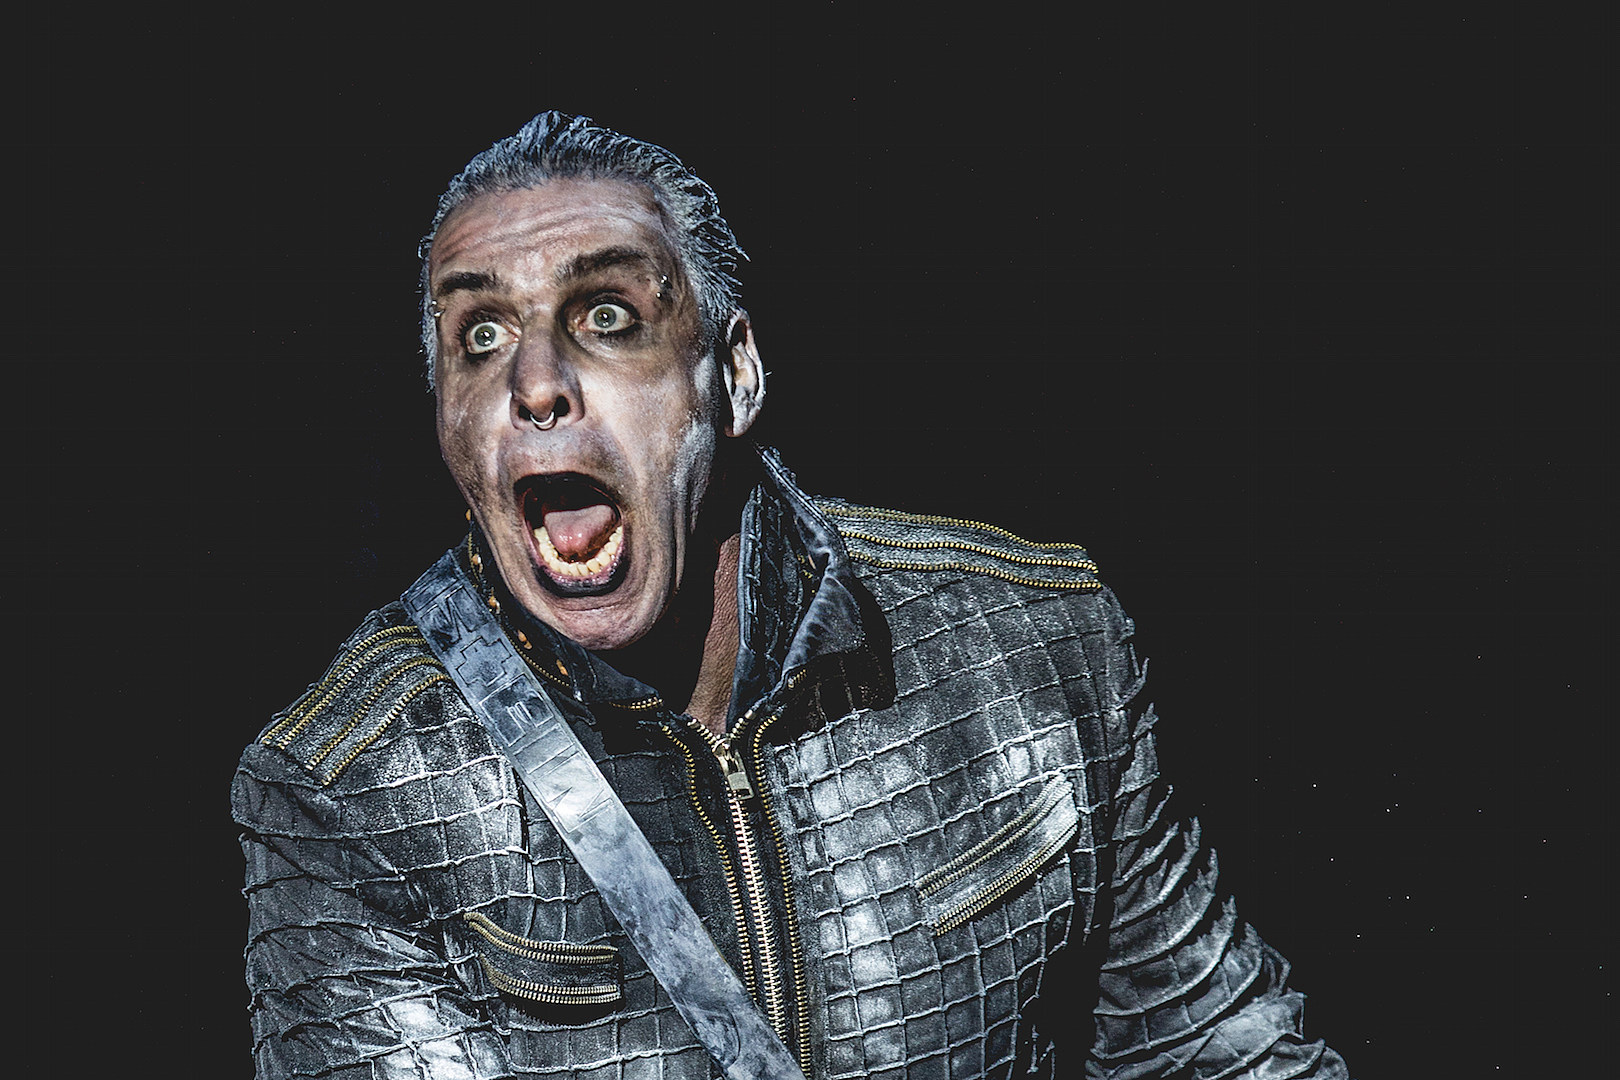 Listen to Rammstein's Self-Titled Album Now